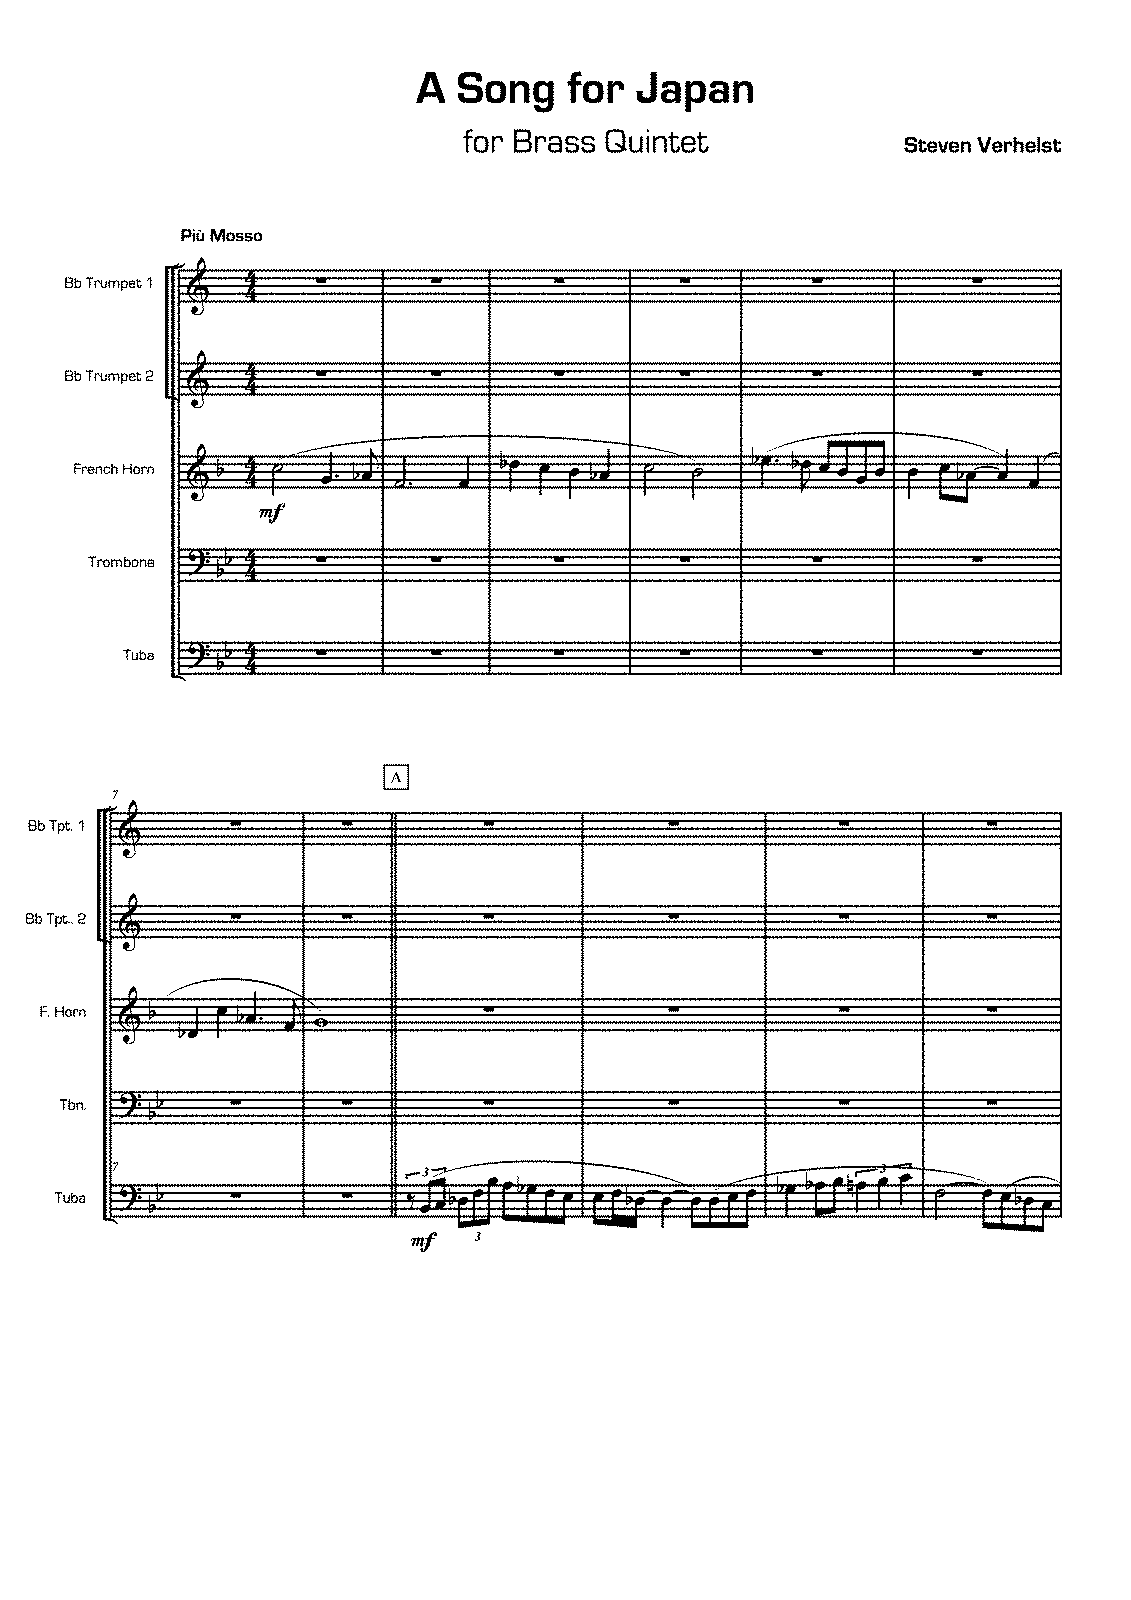 PMLP241675-A Song For Japan - Brass Quintet Version.pdf